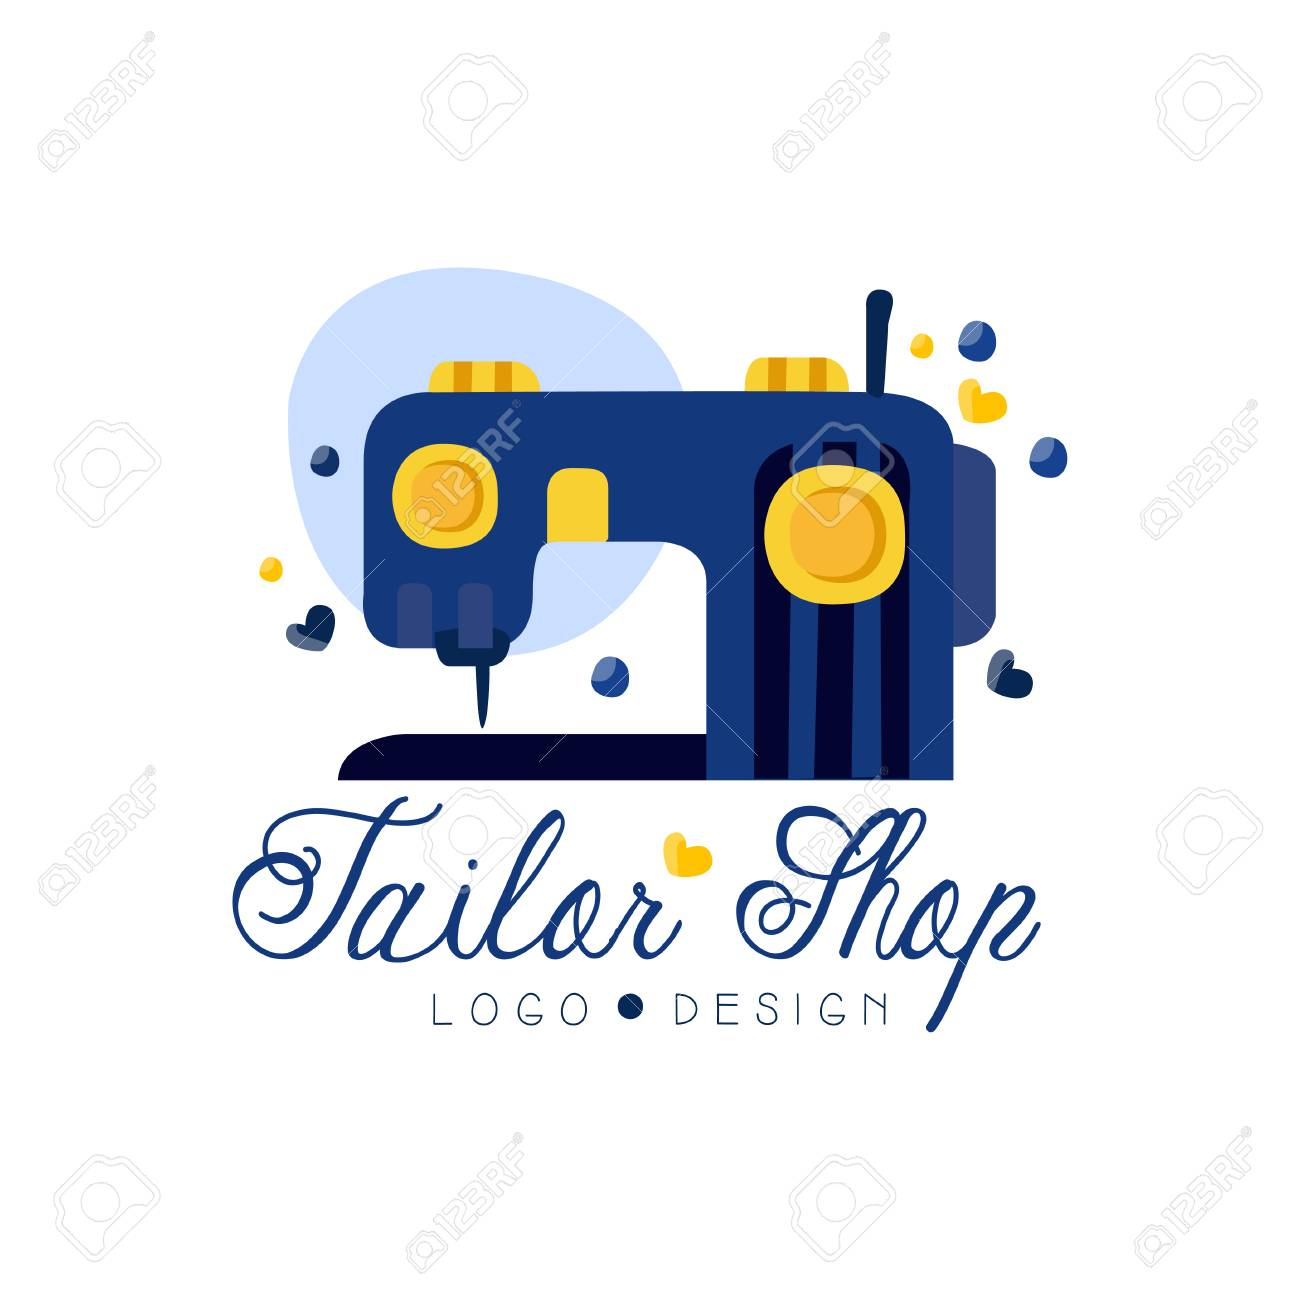 Tailor Shop Logo Design Emblem With Sewing Machine Fashion Royalty Free Cliparts Vectors And Stock Illustration Image 115658107